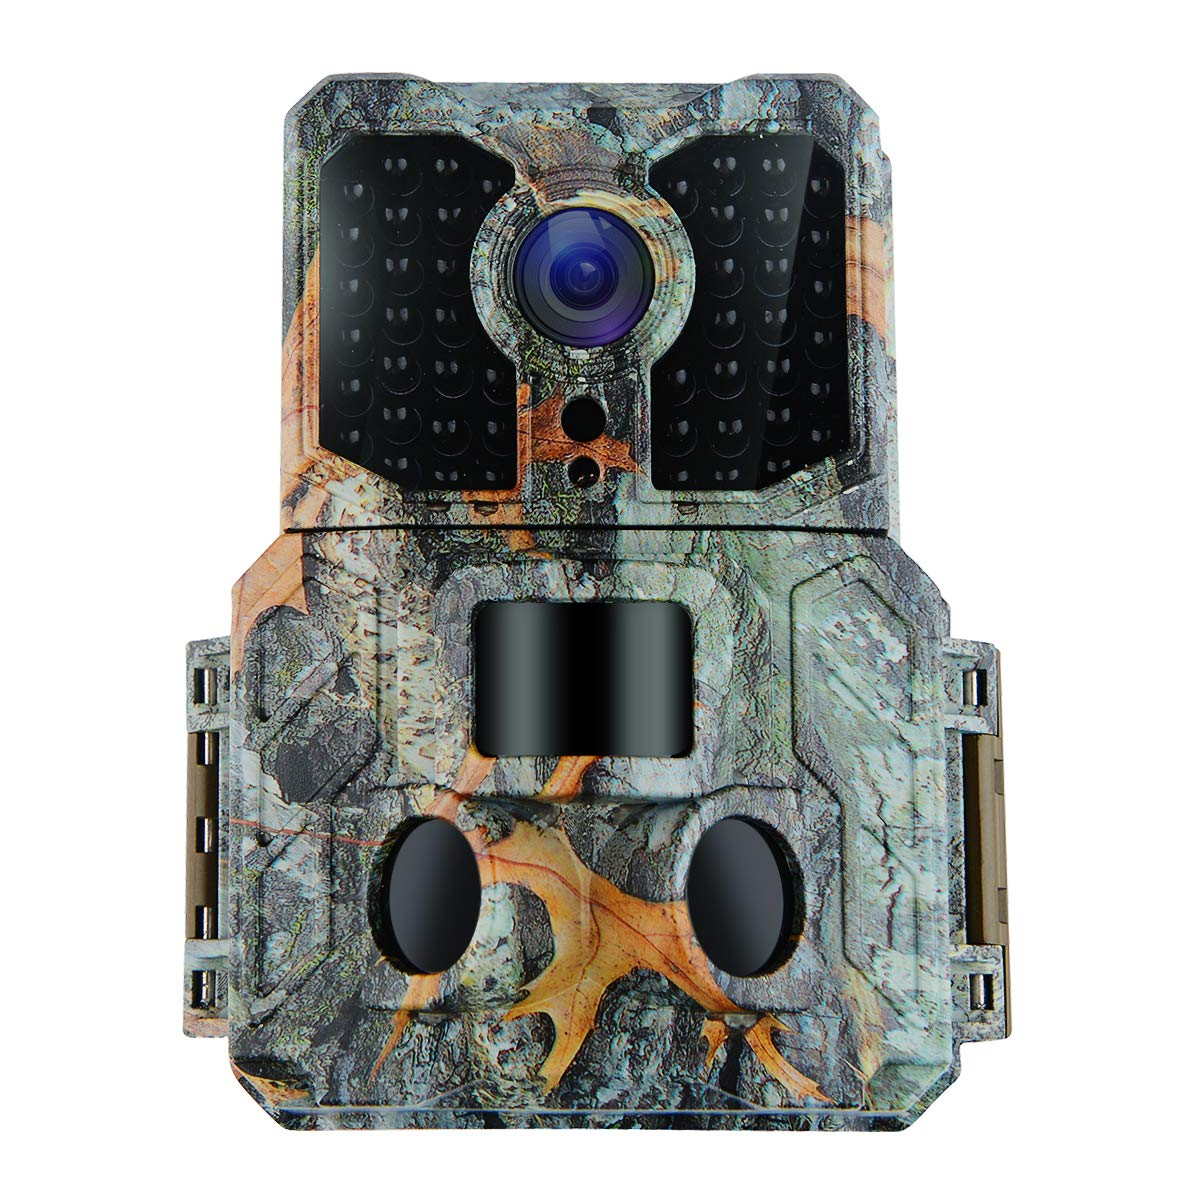 Kuool K3 Trail Camera with Night Vision Motion Activated 48pcs 850NM IR LEDs,1080P 16MP Wildlife Hunting Game Cam,3 Trigger Sensors 0.2s Trigger Speed 130°PIR Sensor Angle 2.0'' LCD Display IP65